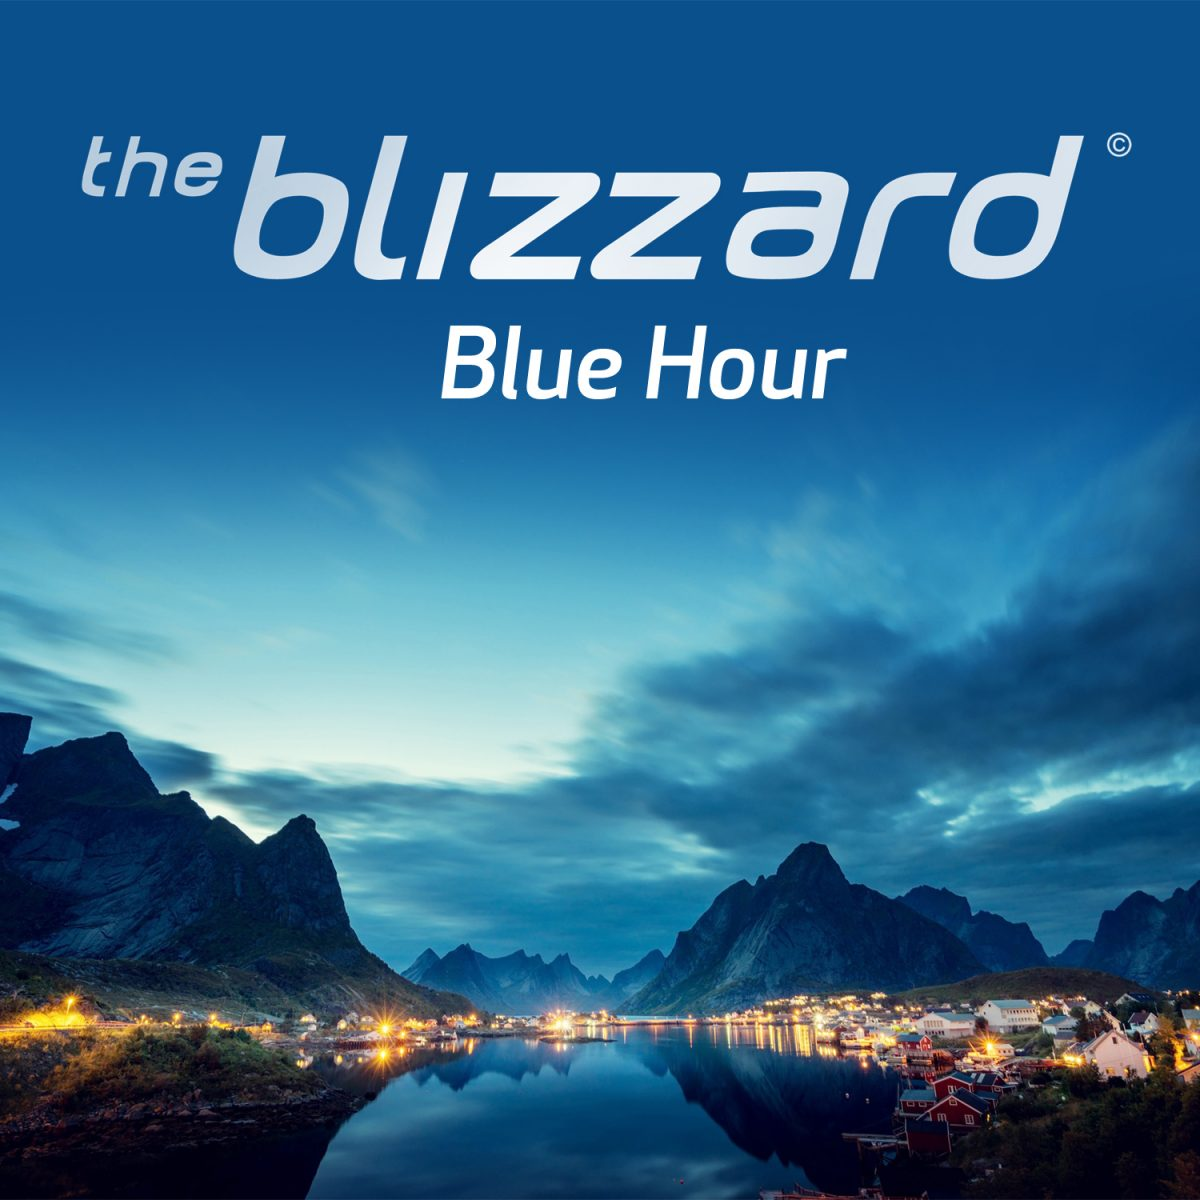 Blue Hour - The Blizzard - on Patreon